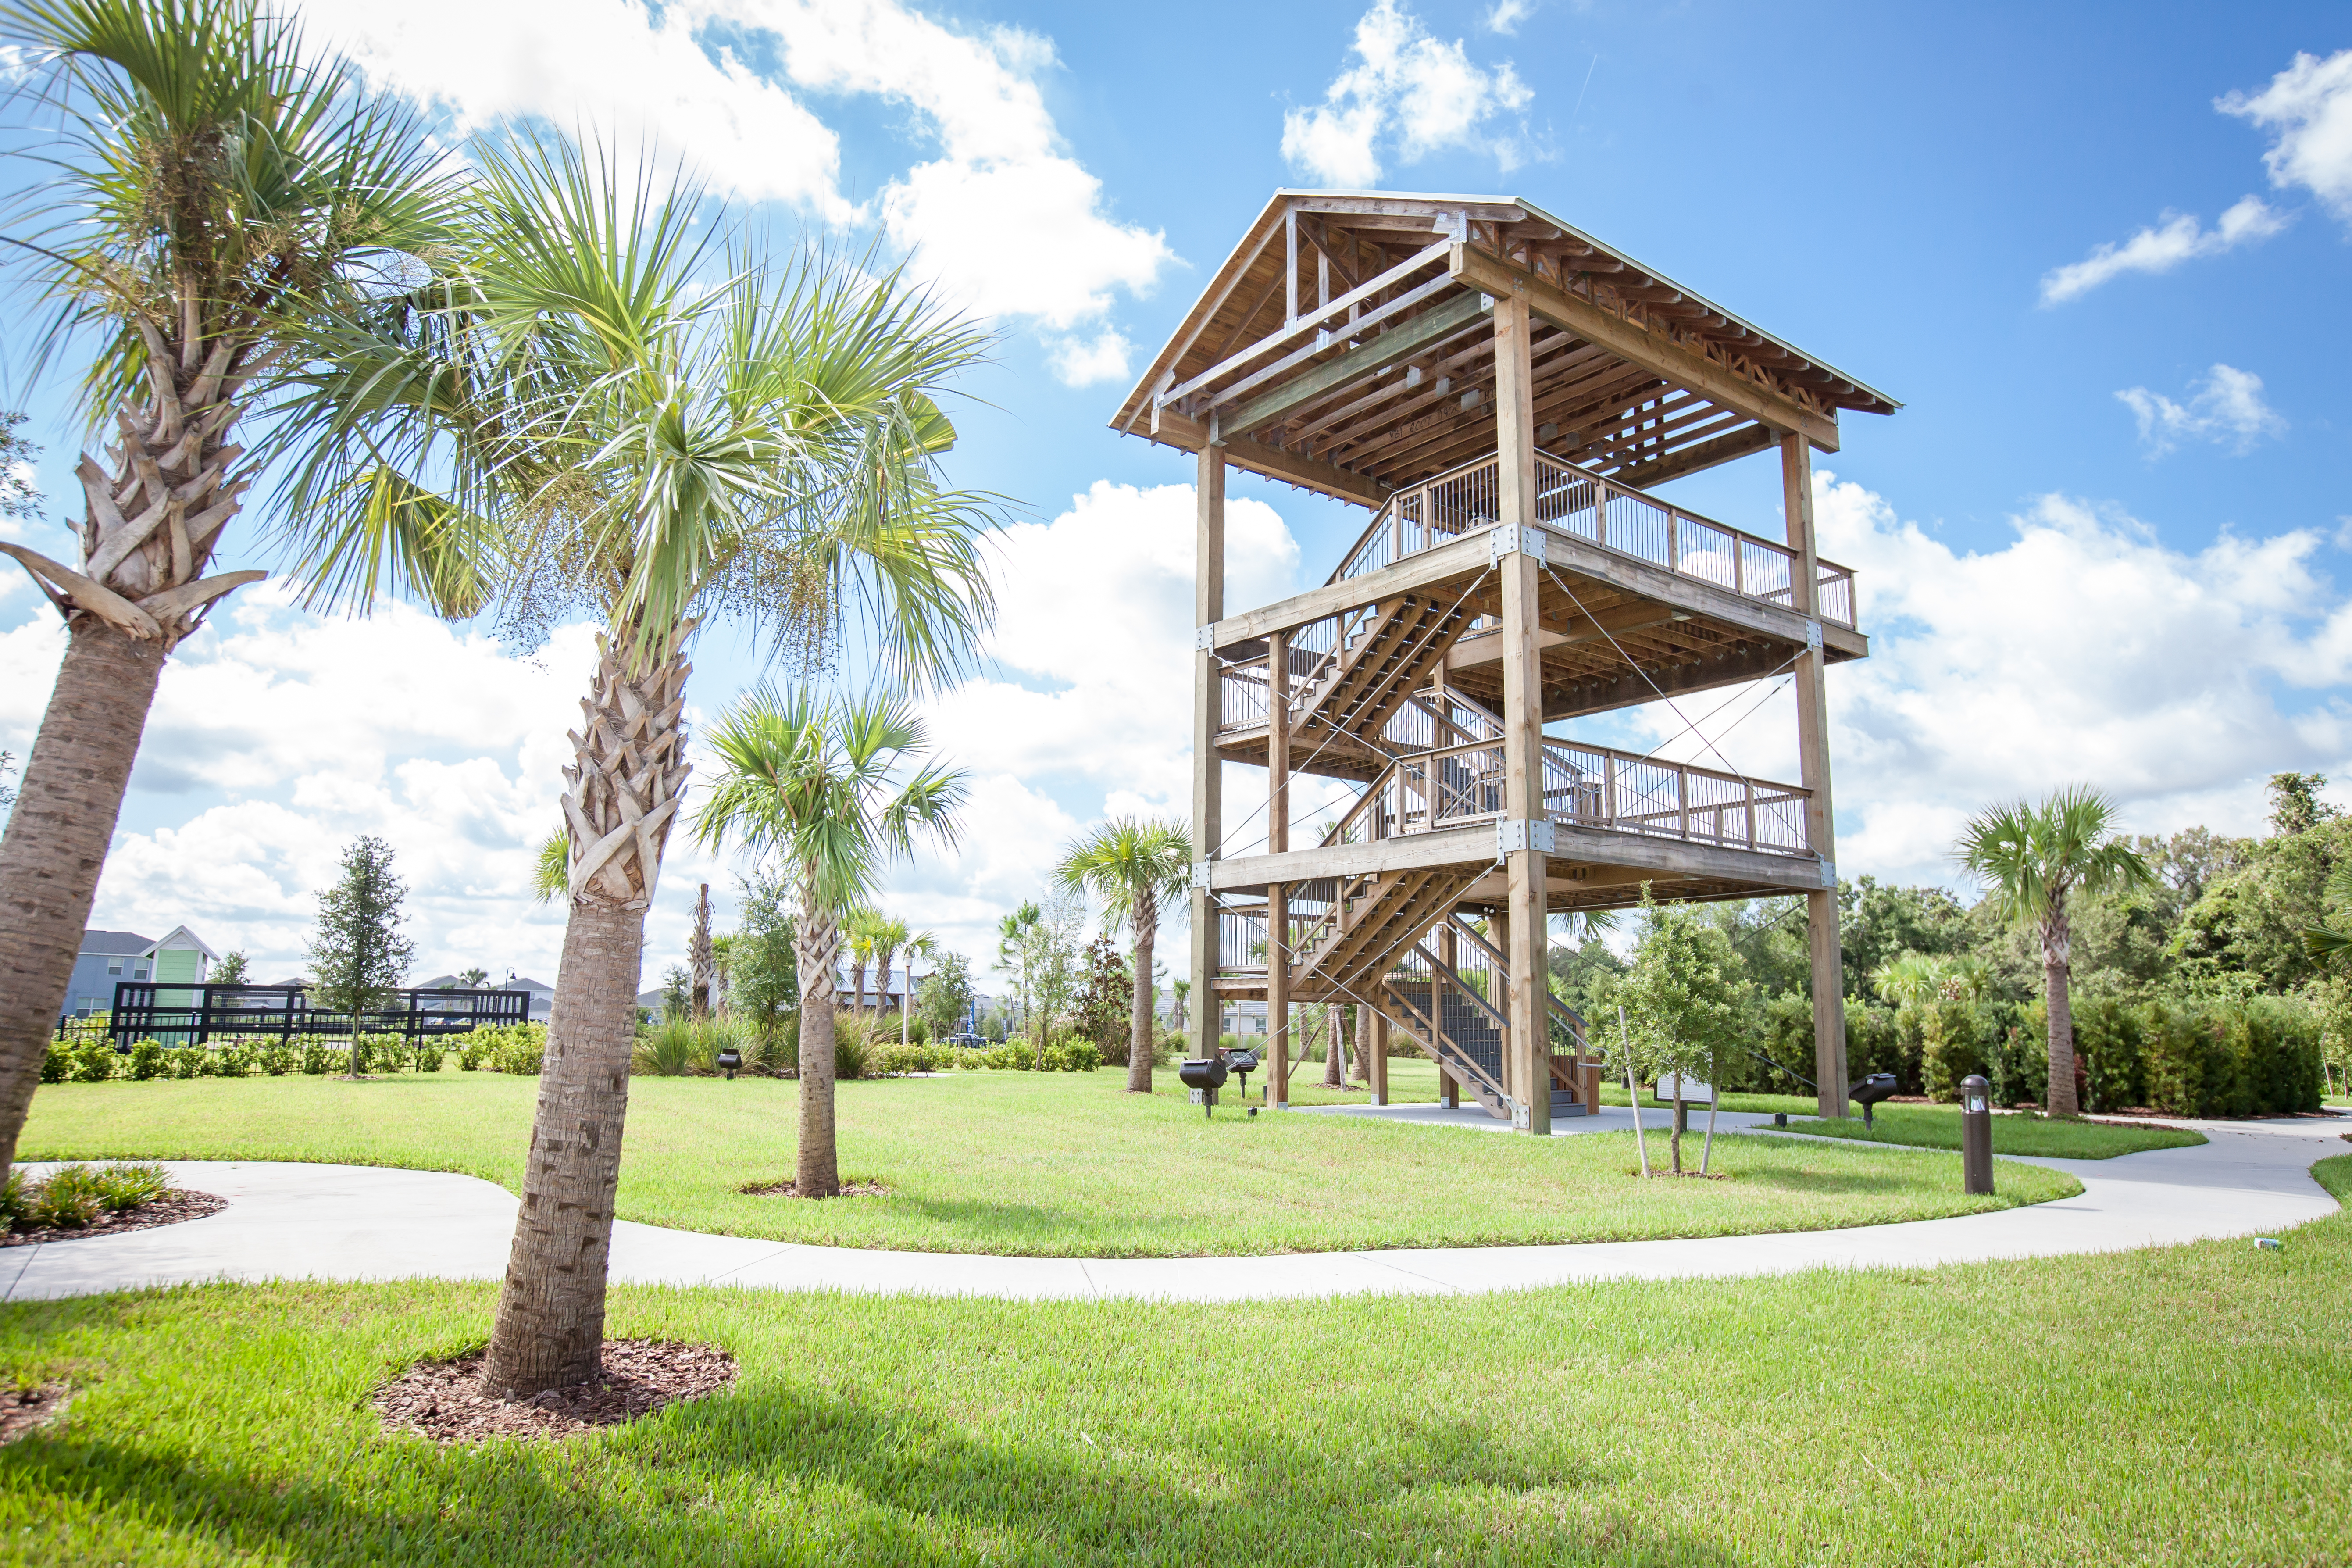 Changing the Narrative in Lake Nona s Storey Park Central